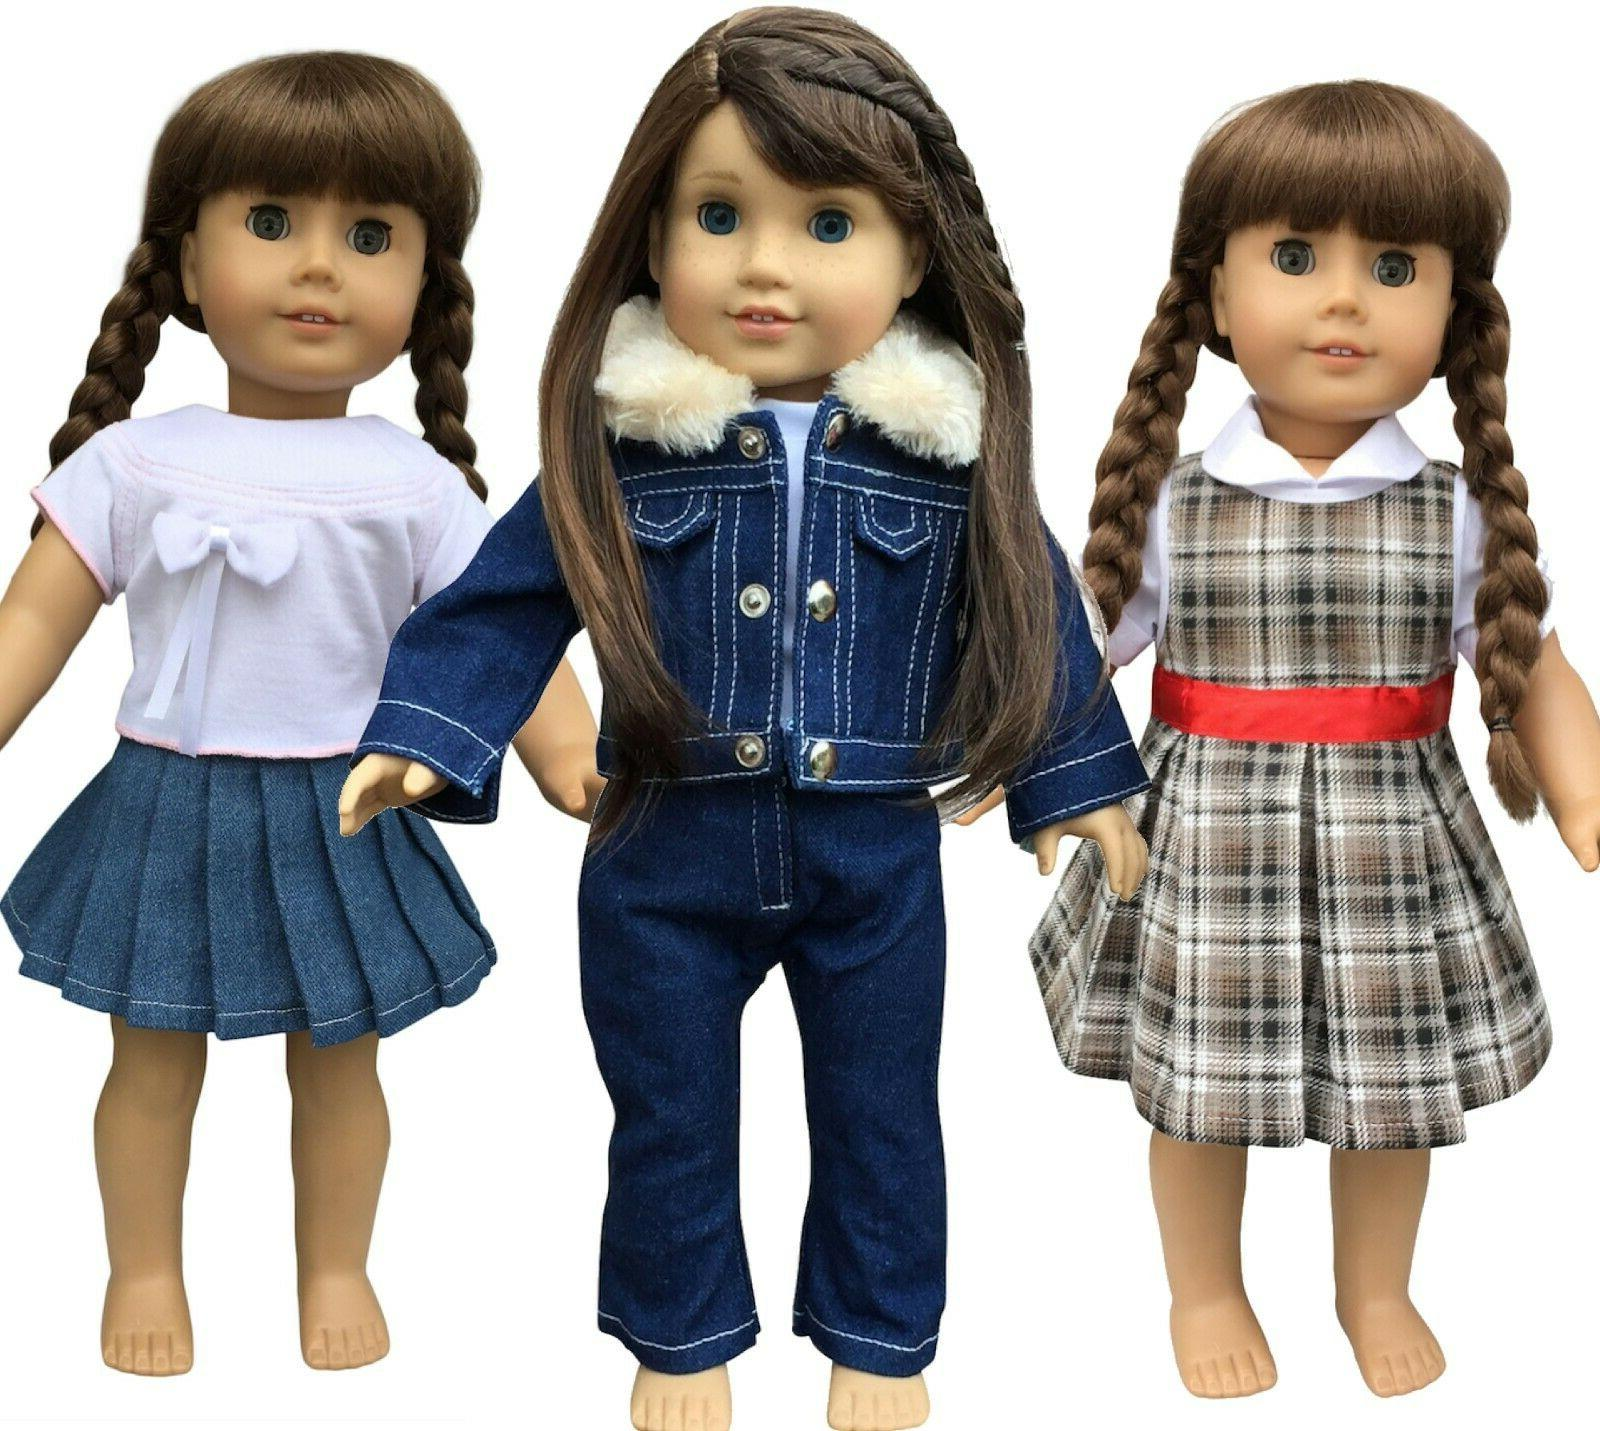 18-Inch American Girl Clothes and